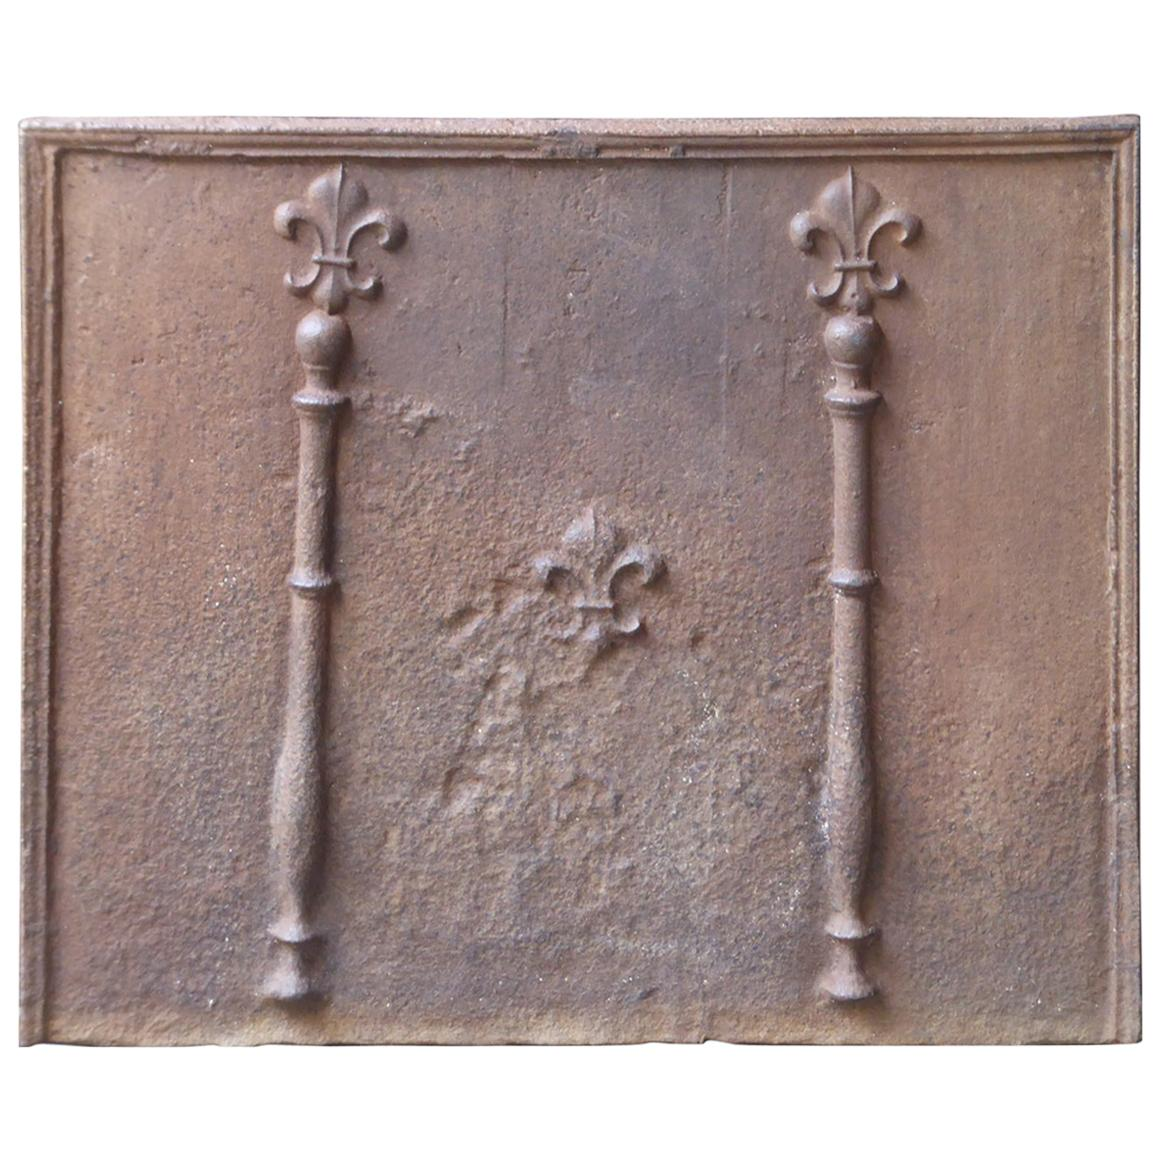 18th Century French Fireback with Pillars and Fleur de Lys